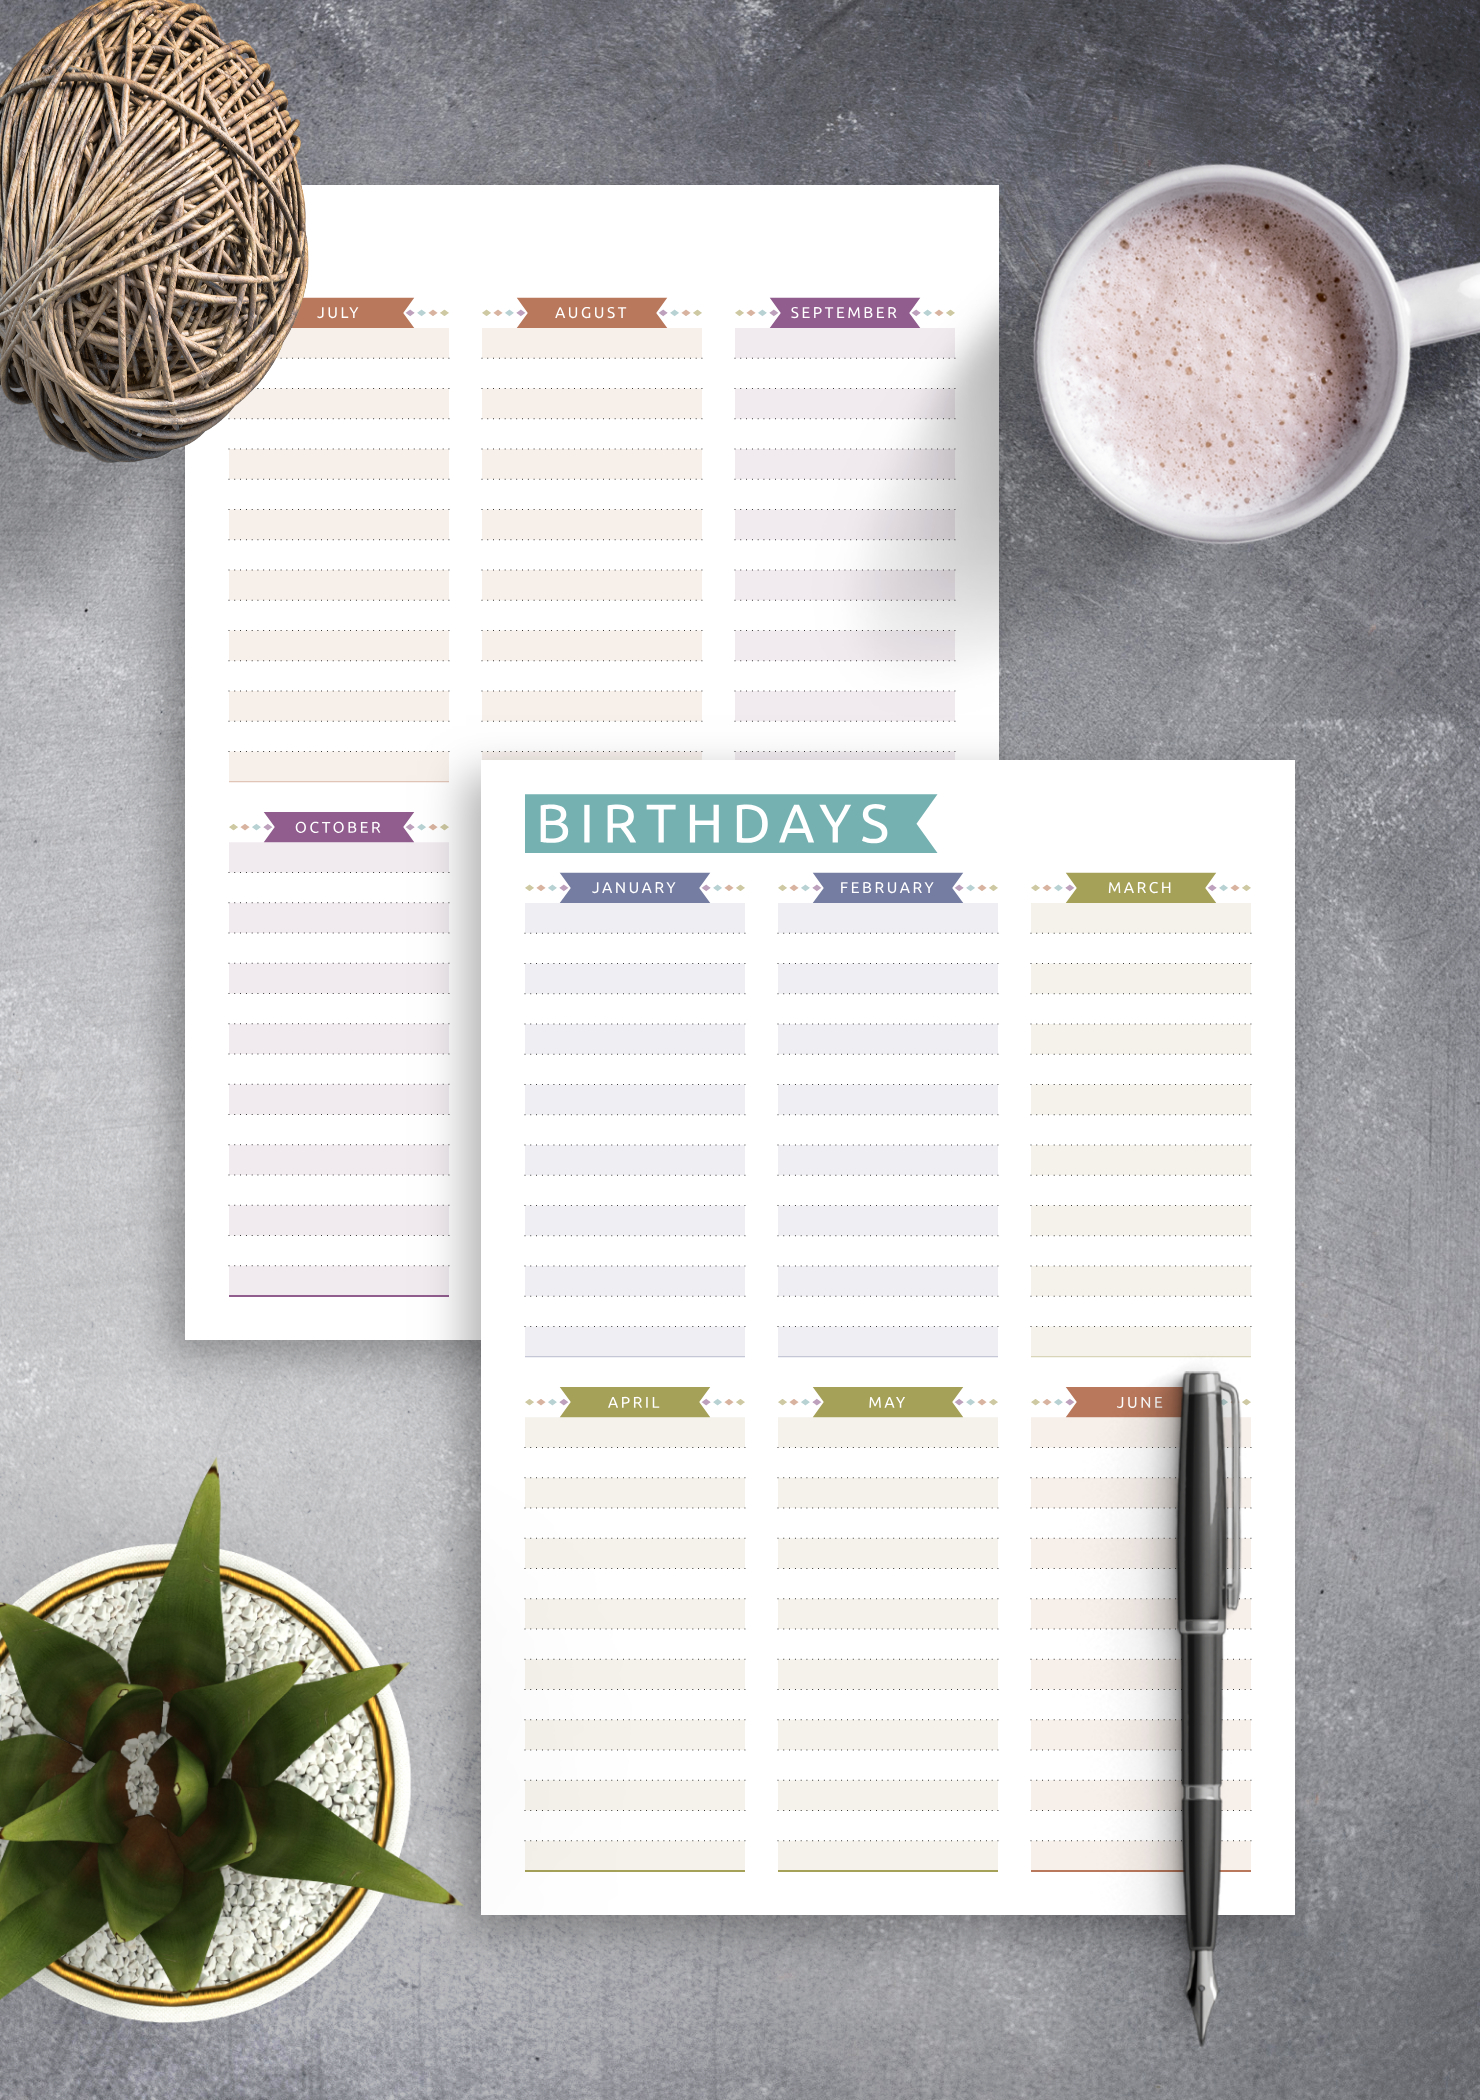 Download Printable Birthday Calendar - Casual Style Pdf Editable Birthday Calendar Template Free